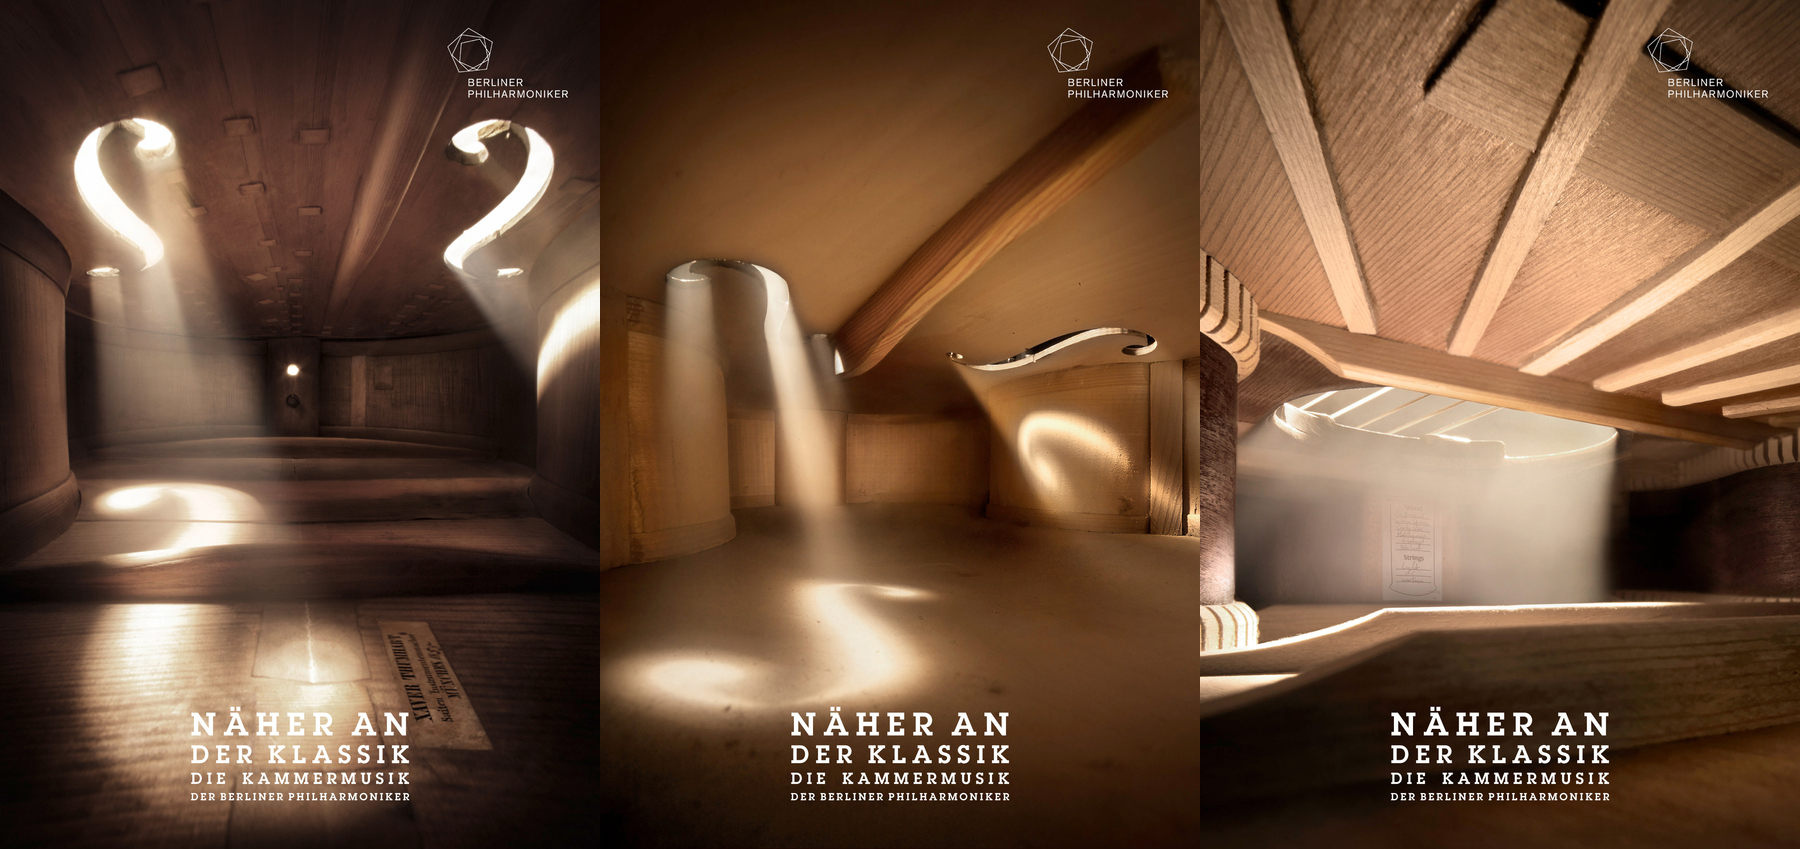 Click here to read Awesome Photos of Musical Instruments' Interiors Make Me Want to Live In Them